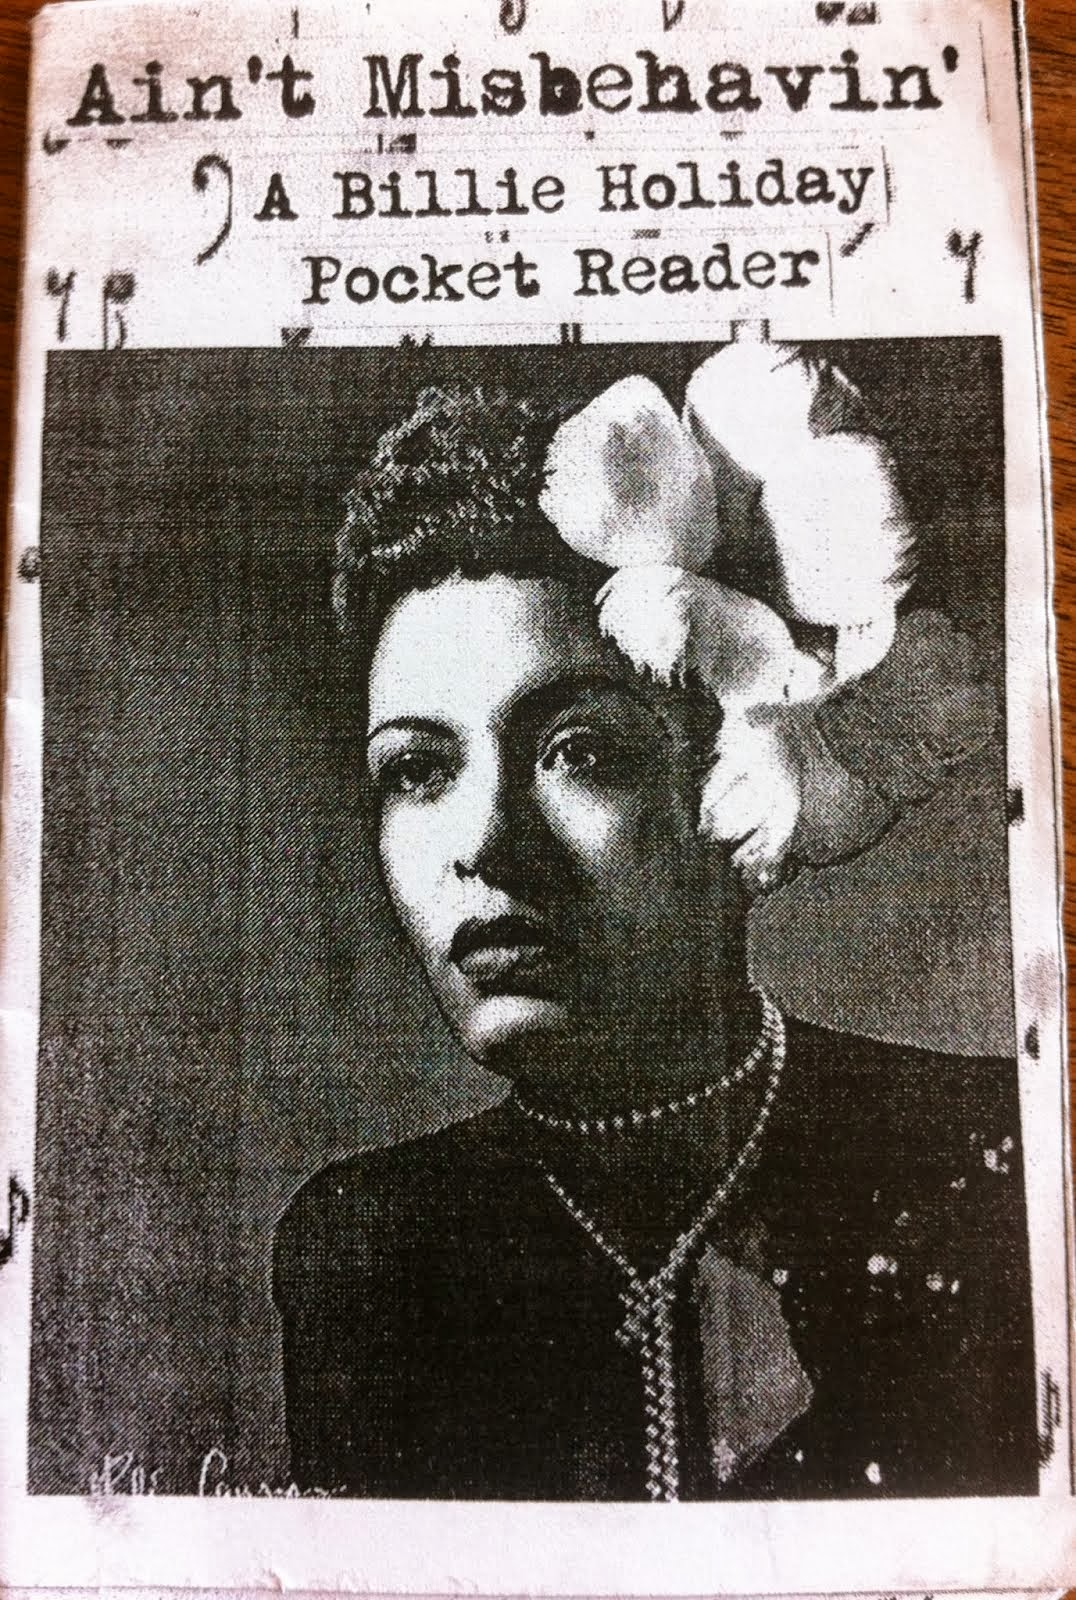 A Billie Holliday Pocket Reader